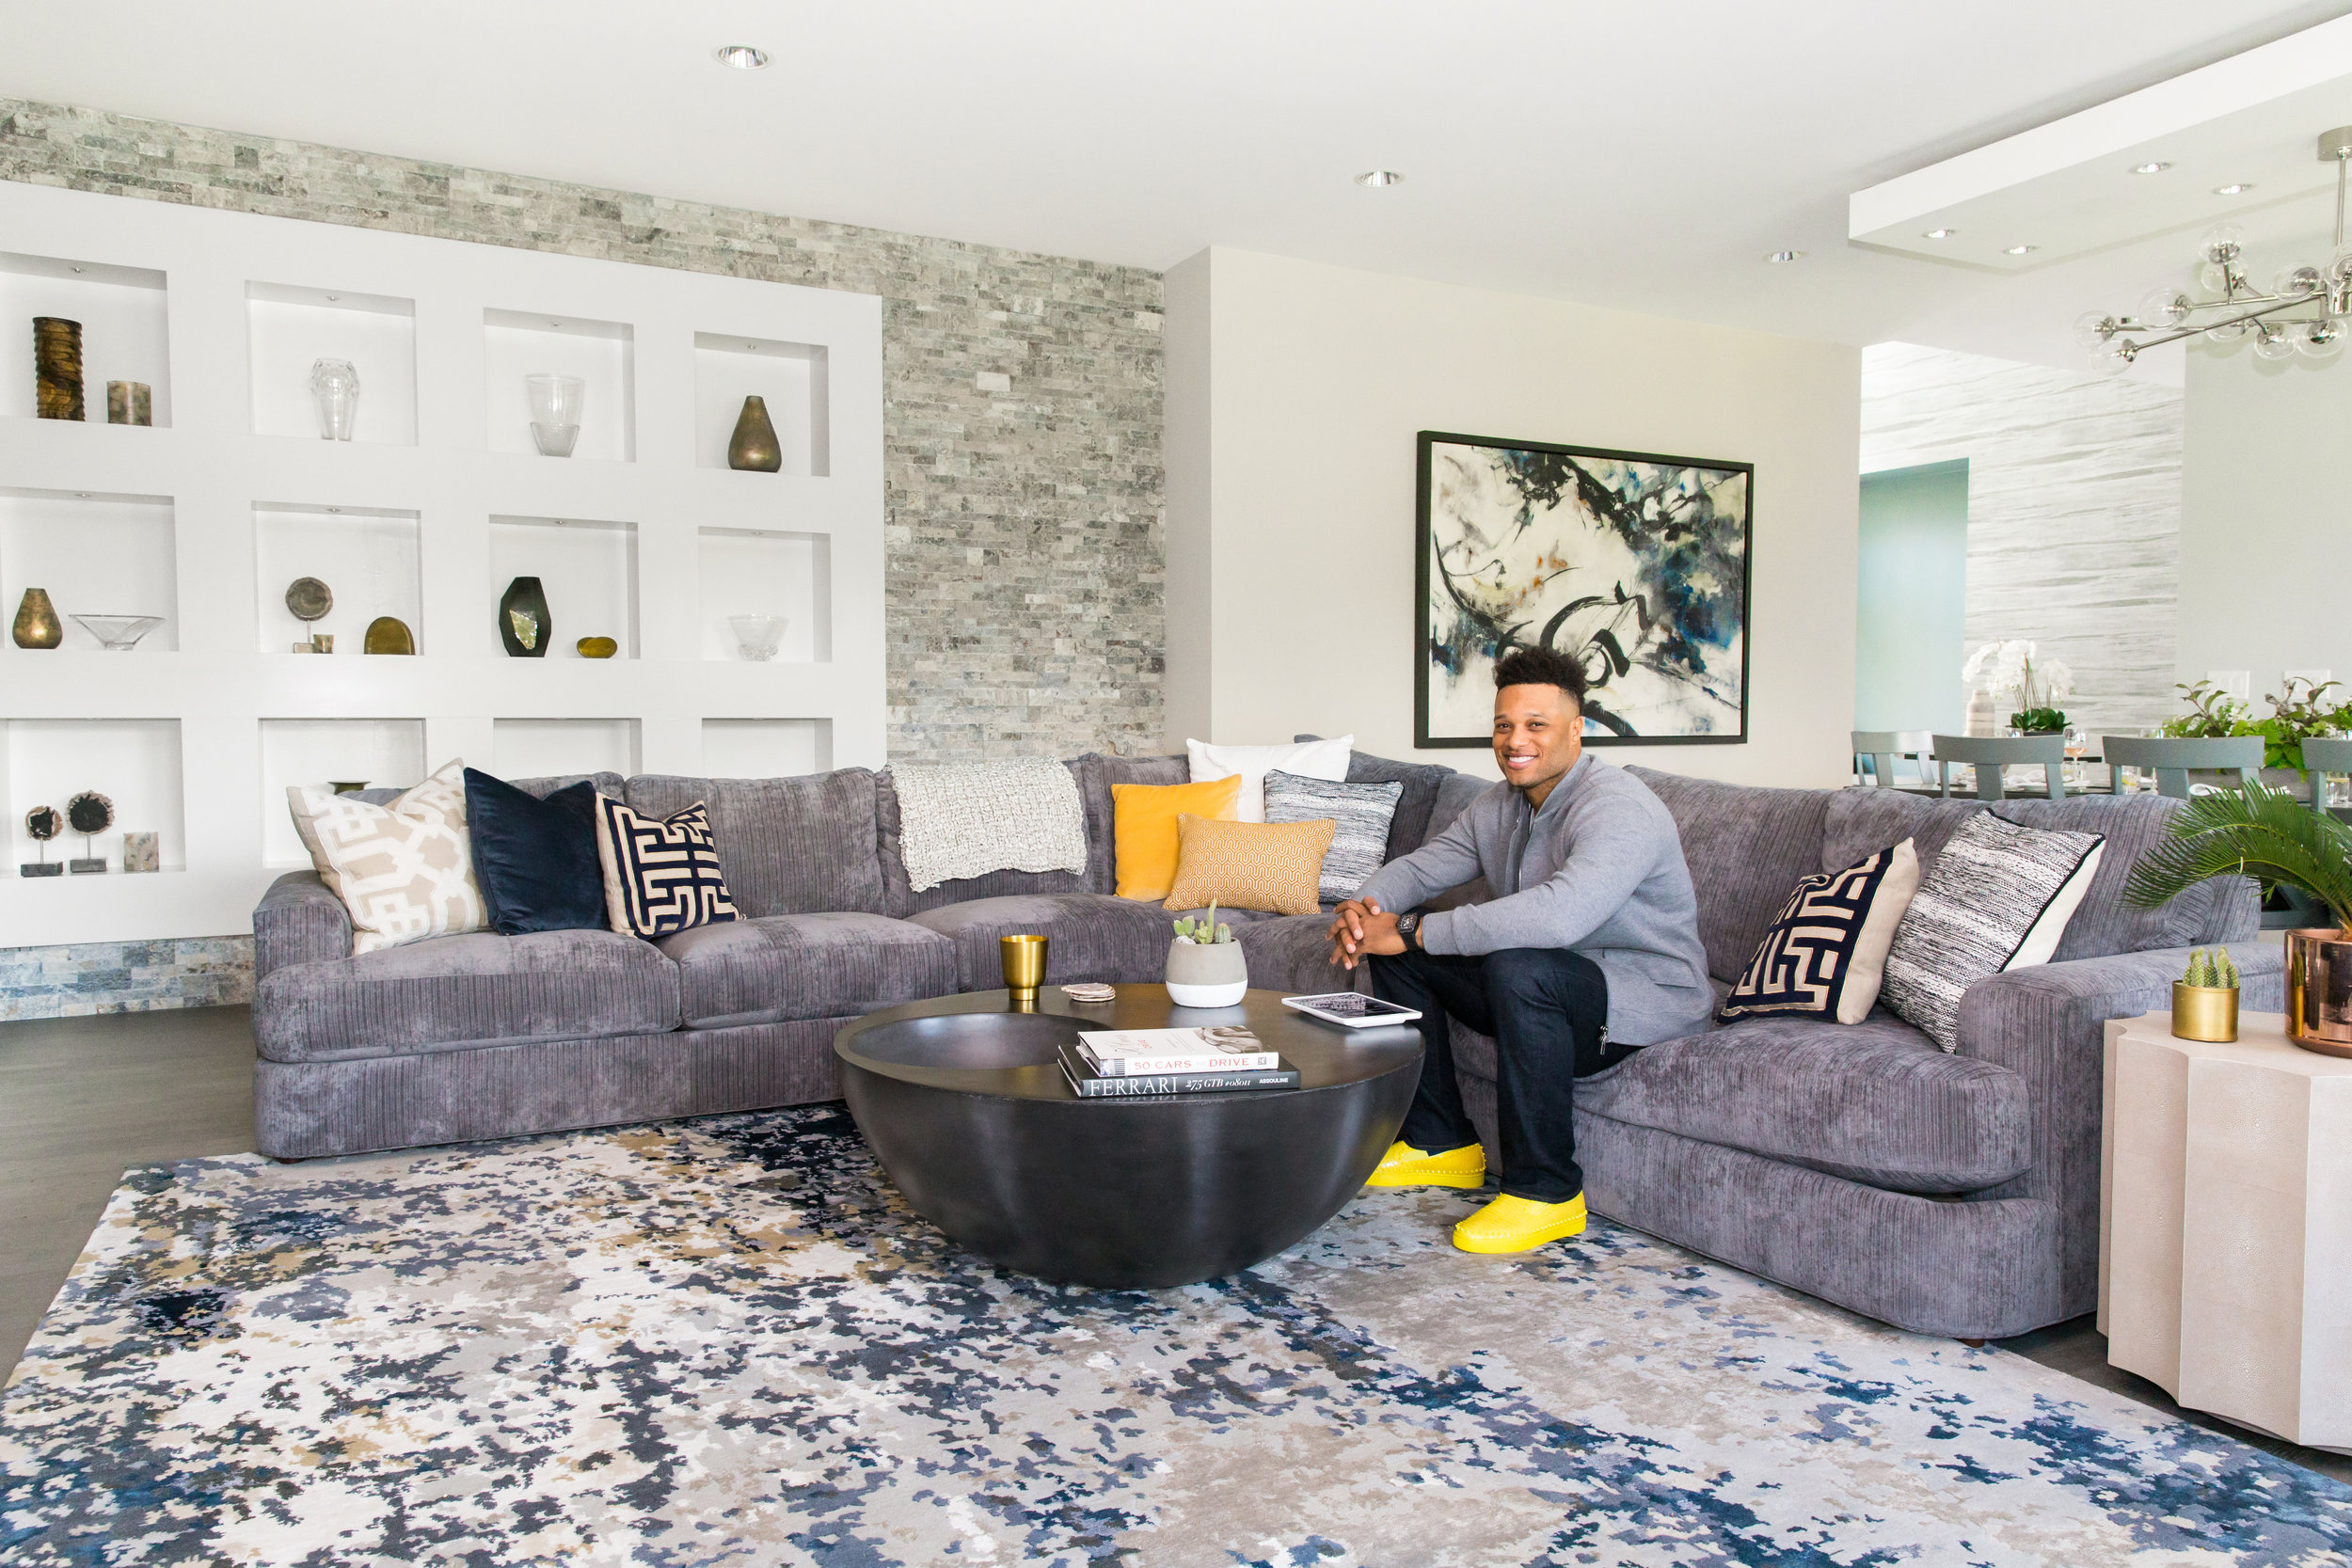 Robinson Cano's Home - Project Manager, Co-Designer, and on site Stylist